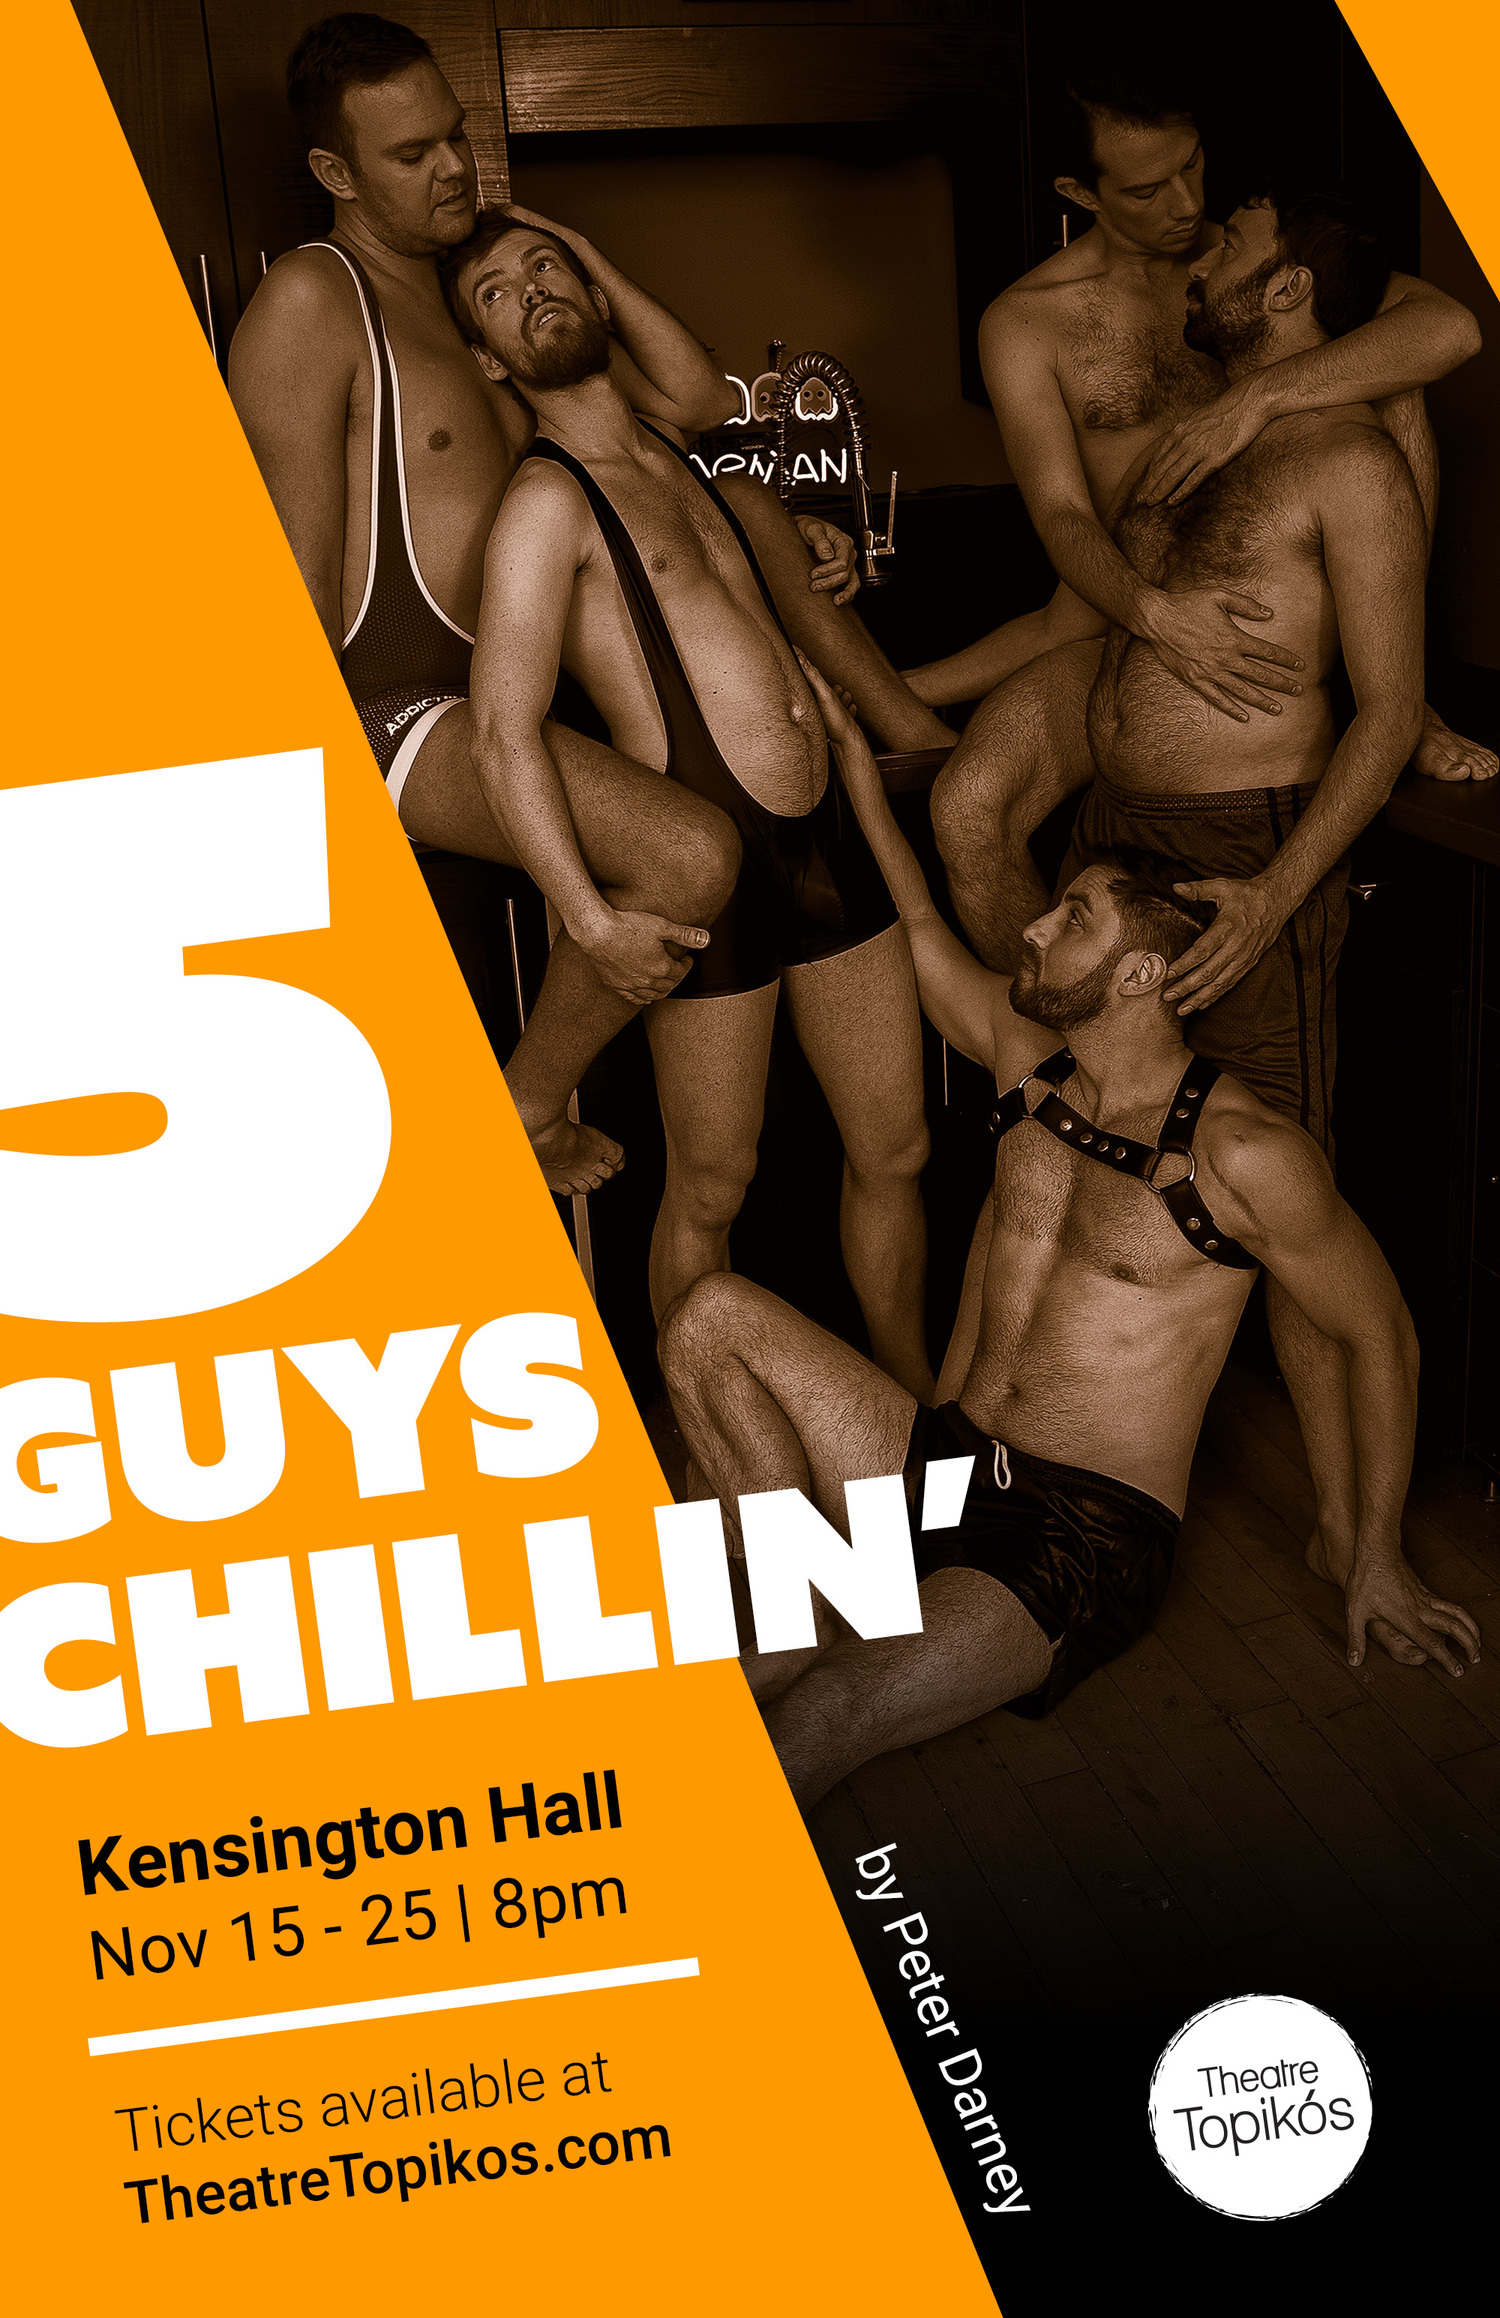 5 GUYS CHILLIN' Make Canadian Debut at Kensington Hall